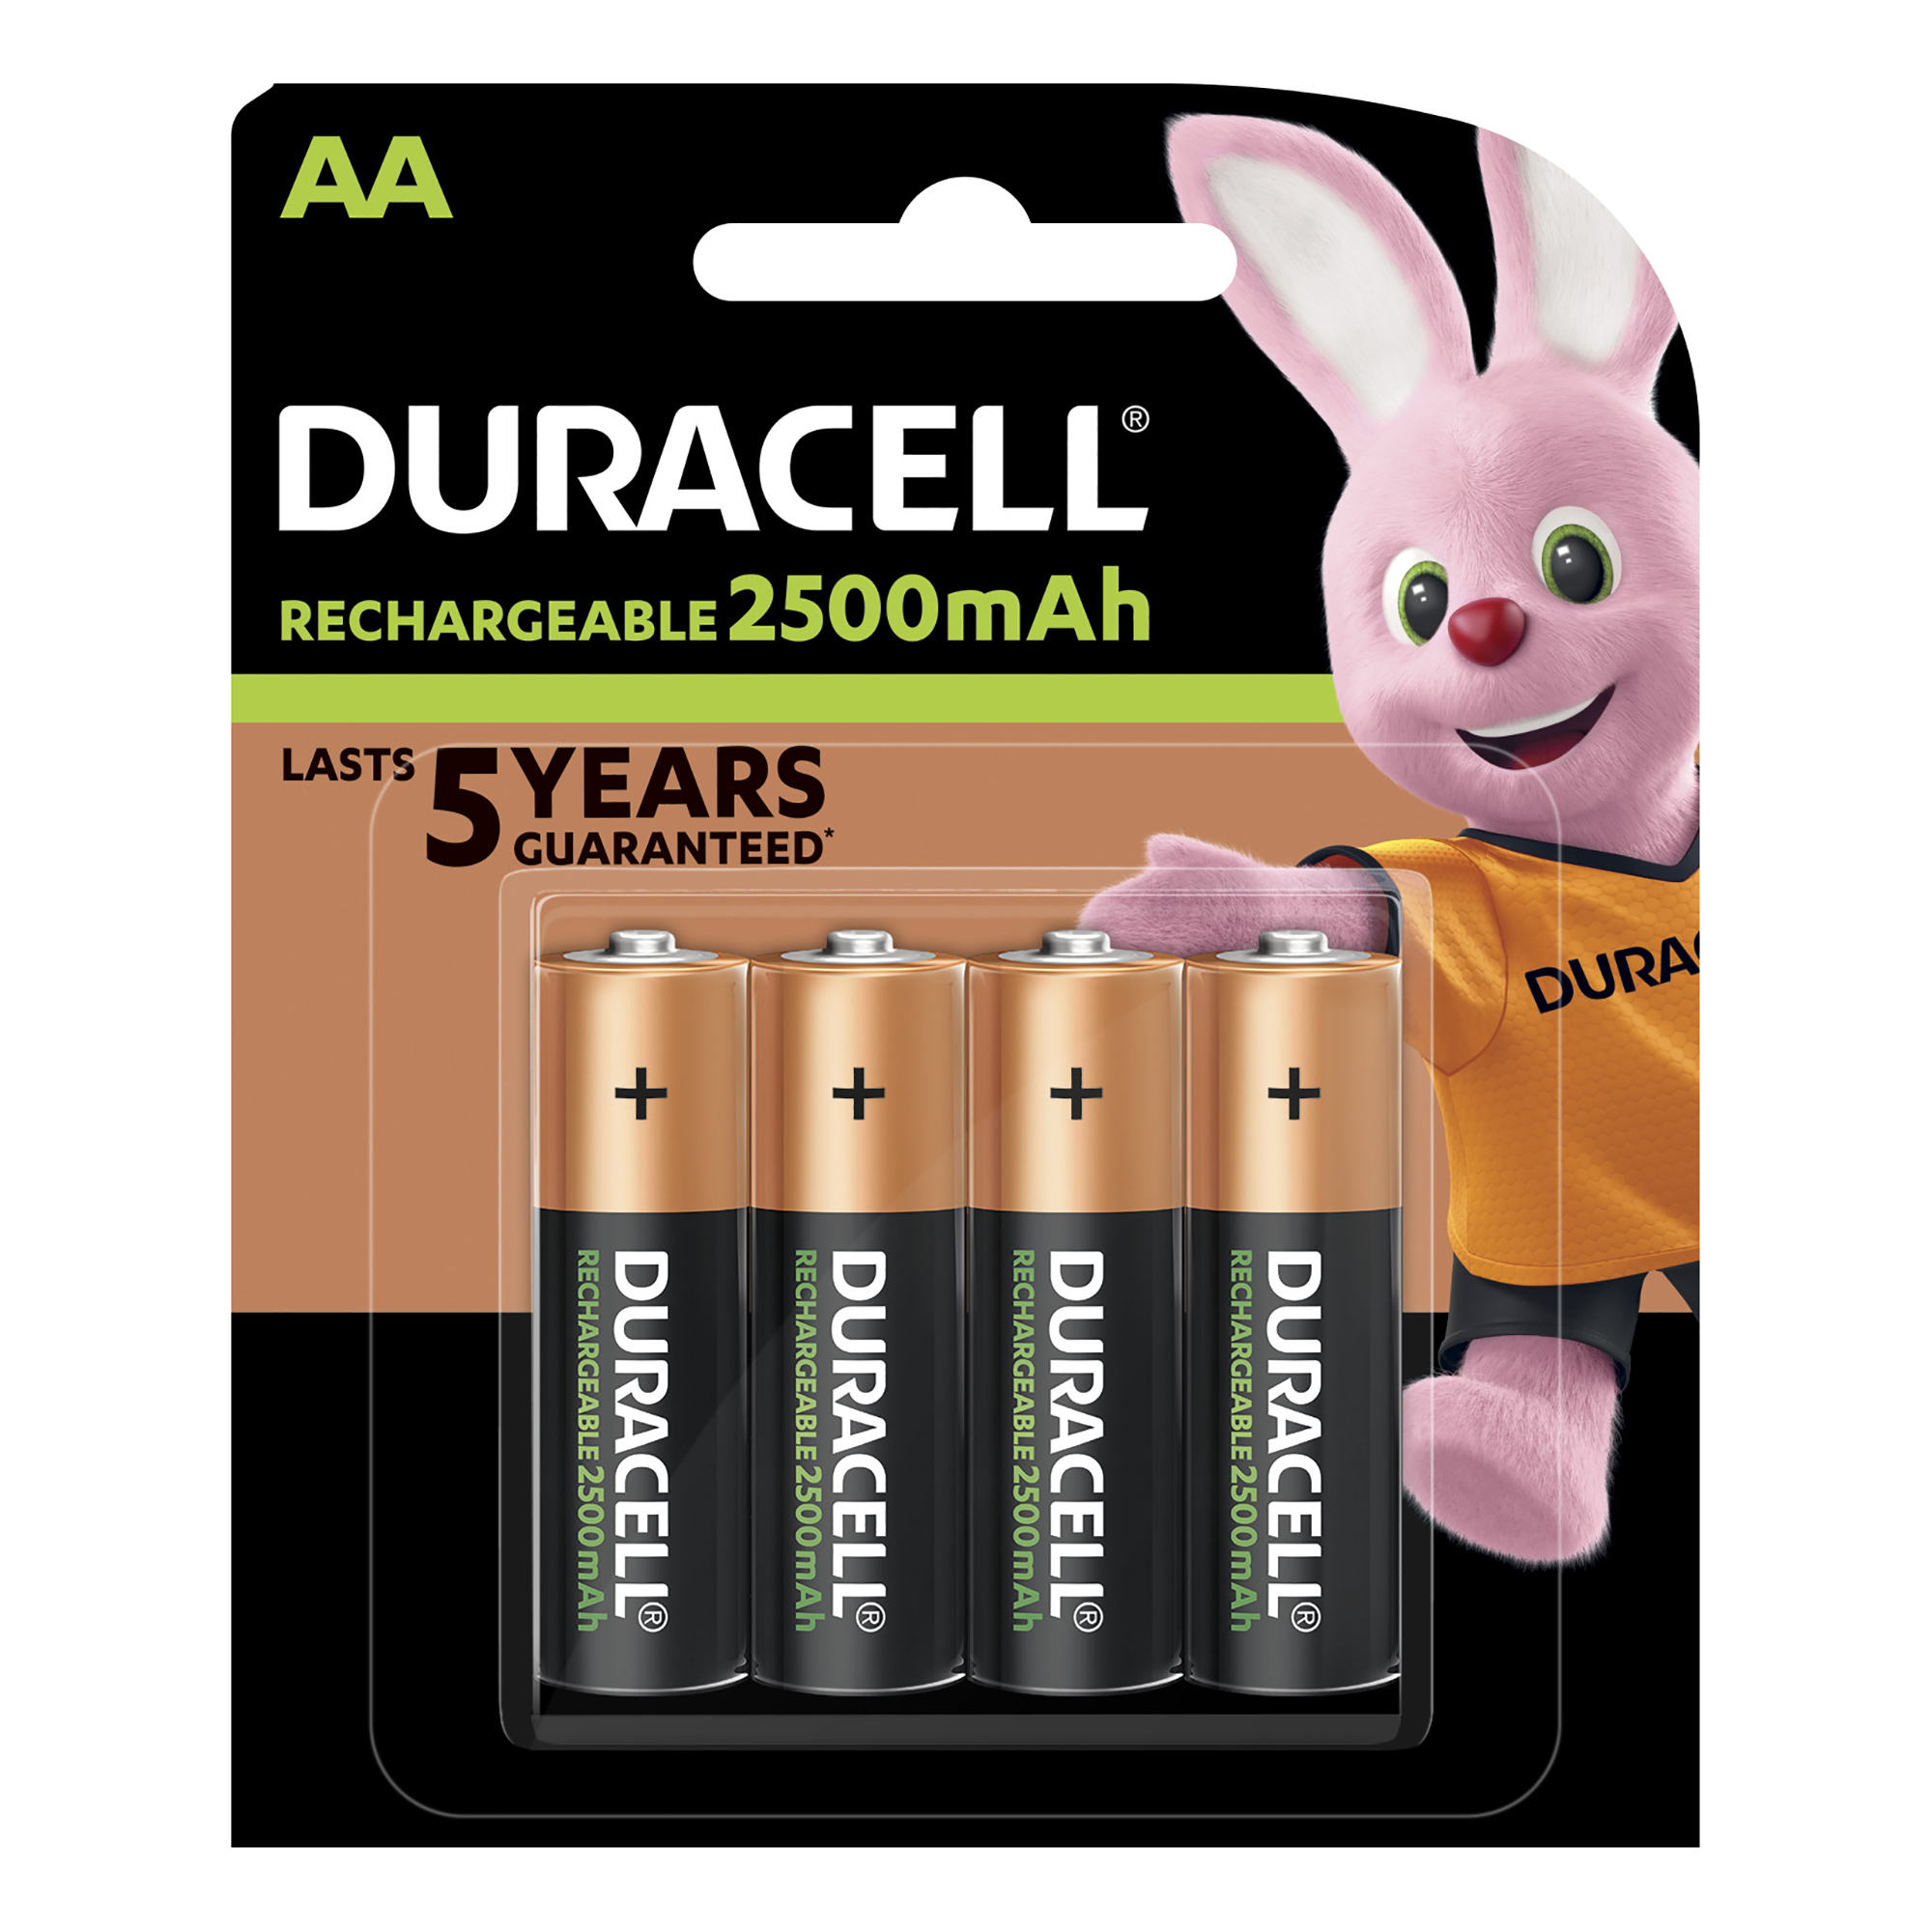 Duracell Stay Charged Battery Long-life Rechargeable 1950mAh AA Size 1.2V Ref 81418237 Pack 4